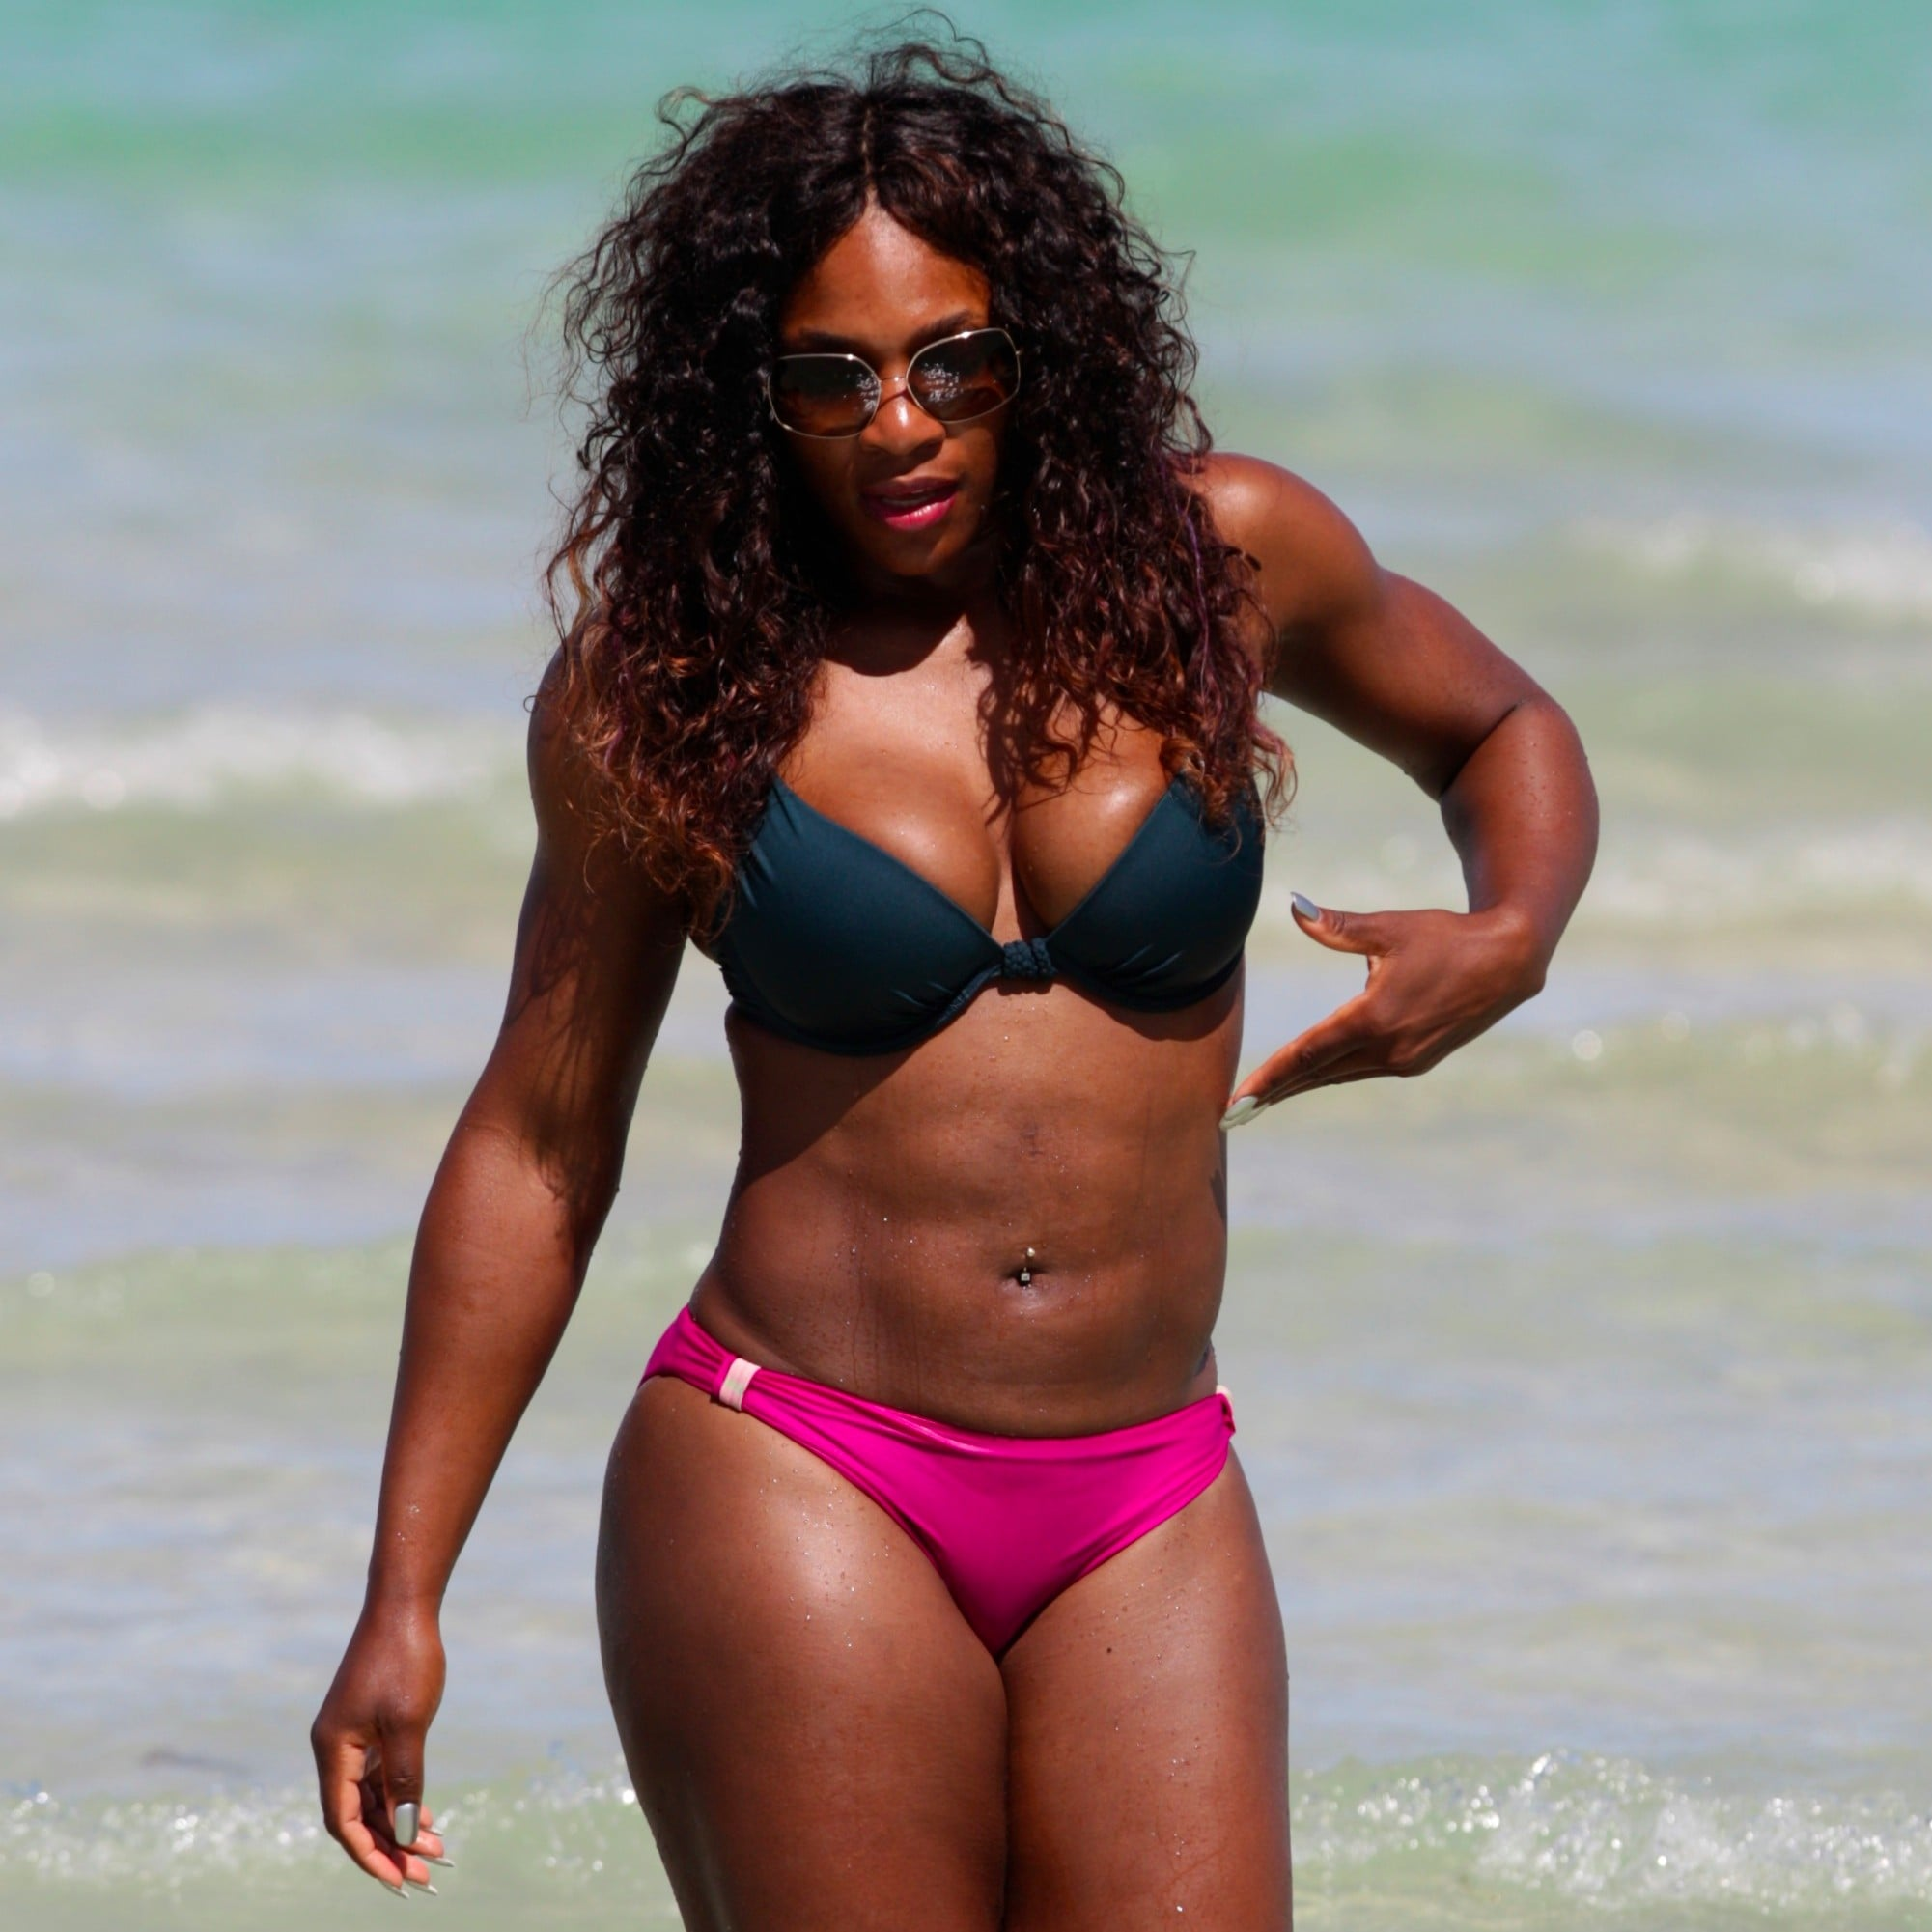 Serena williams playboy pictures